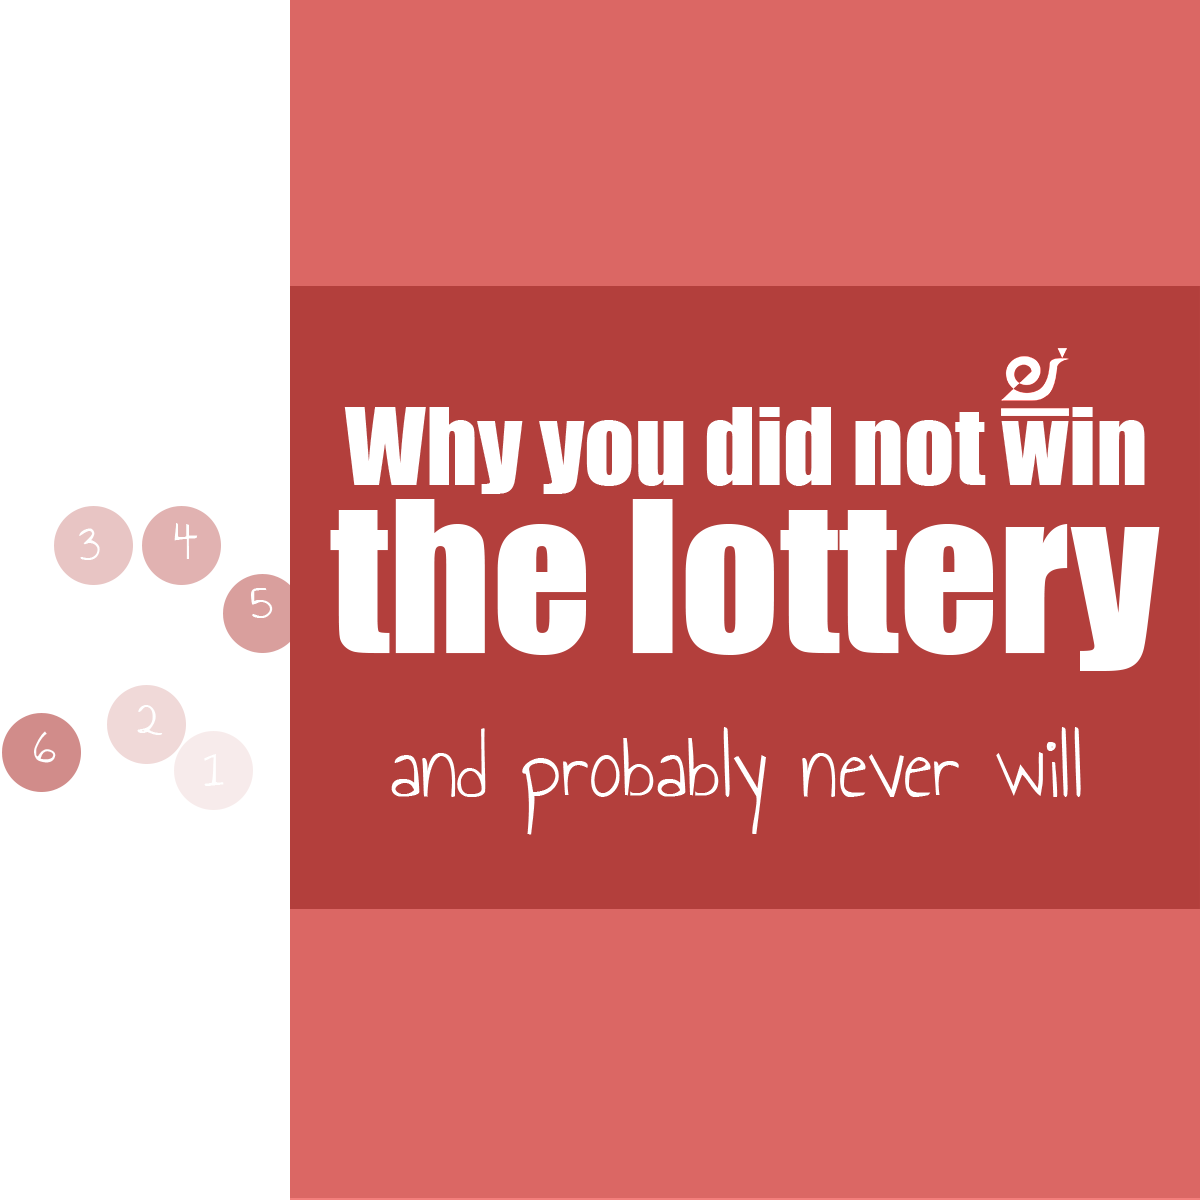 Why you did not win the lottery and probably never will.